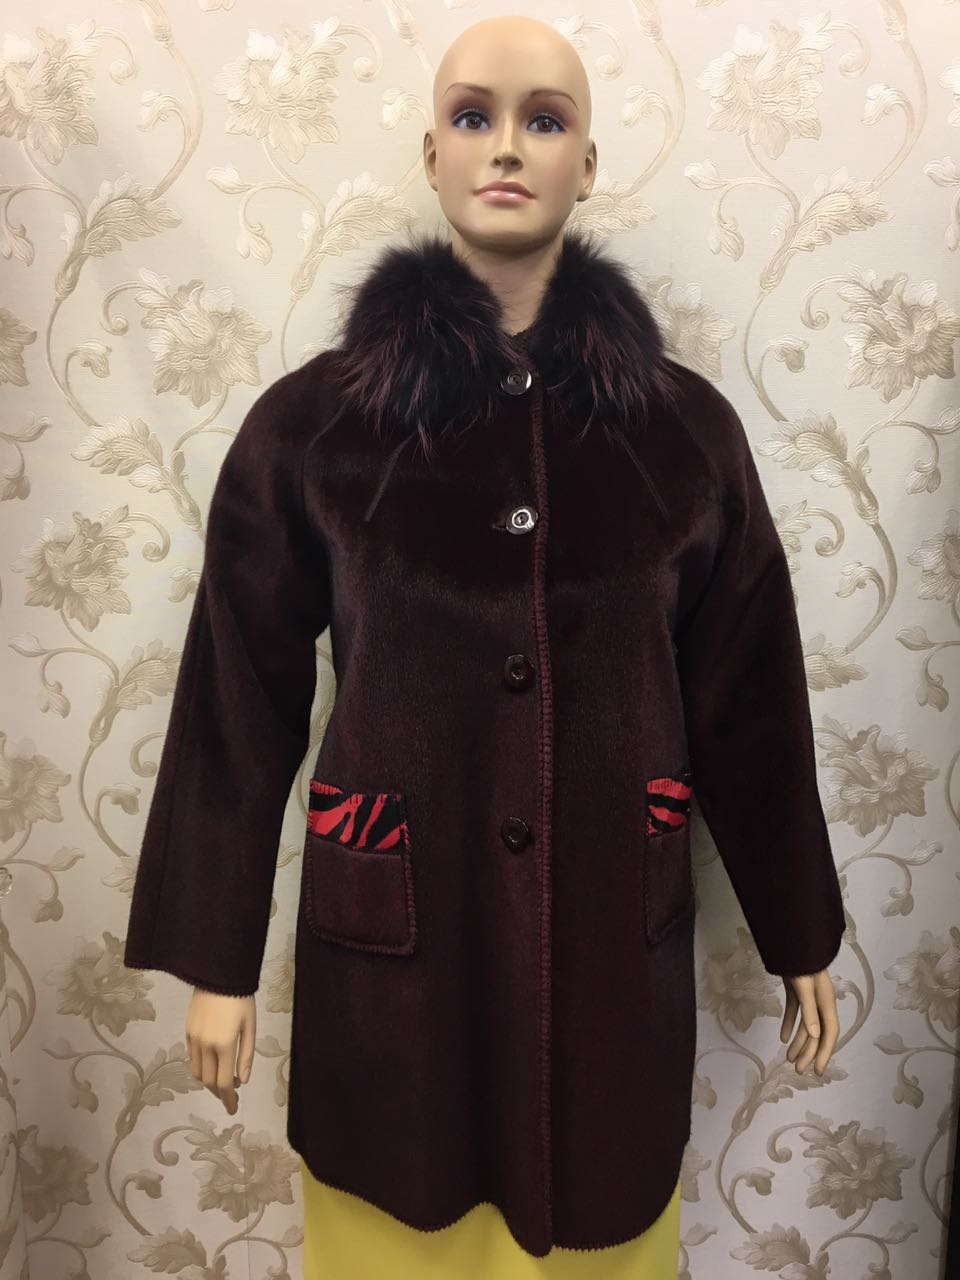 dement-elegant-two-way-winter-coat-with-faux-fur-trim-collar